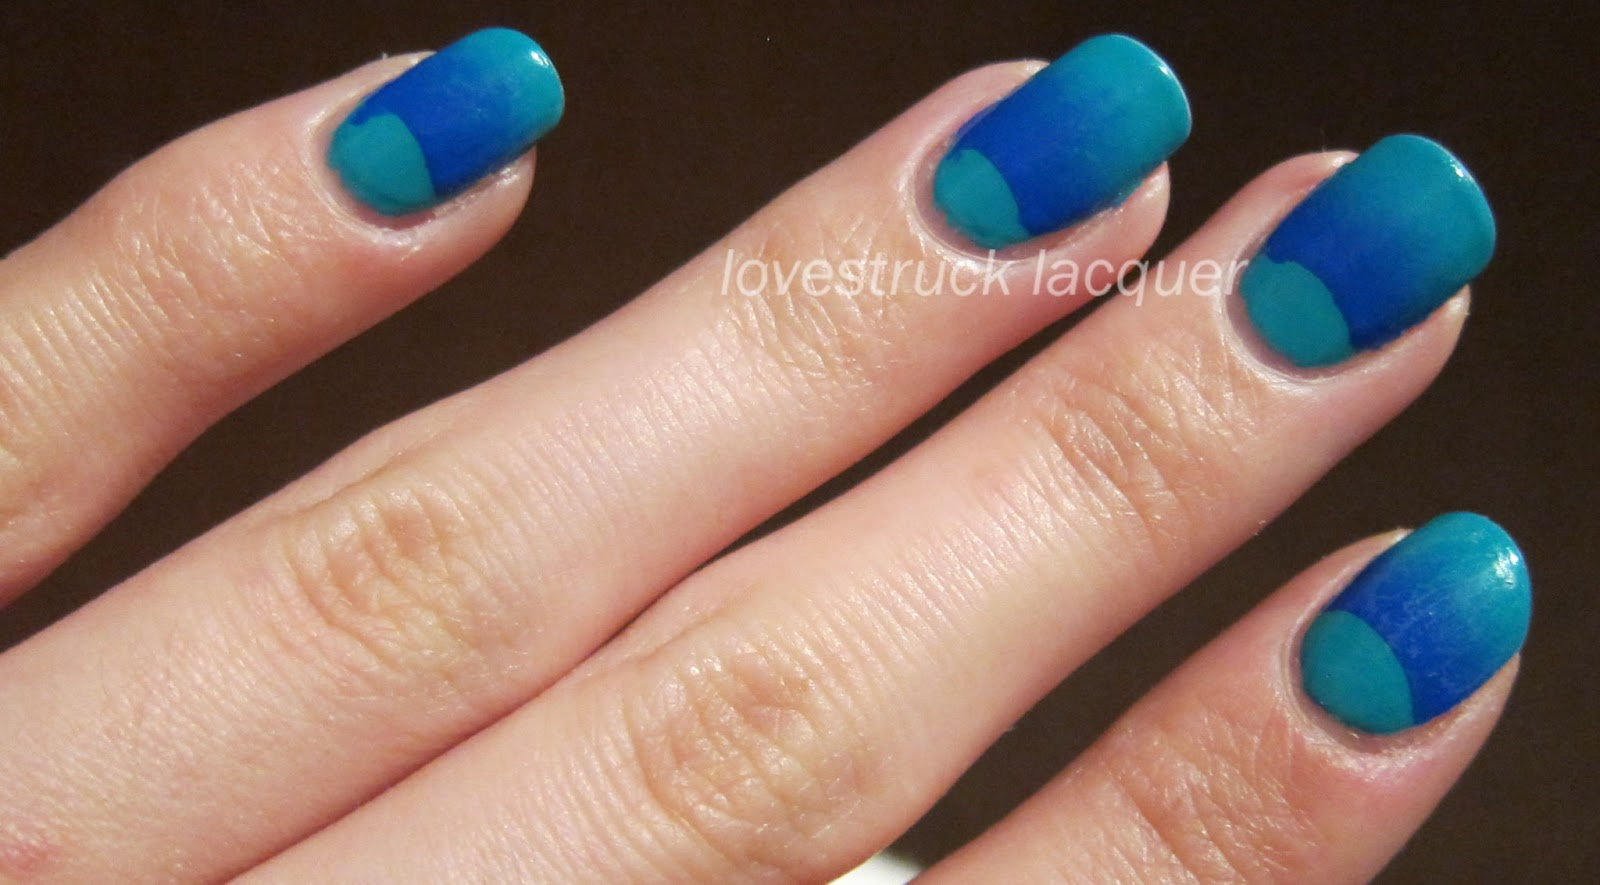 Nail Art Designs For Short Nails At Home Videos- HireAbility